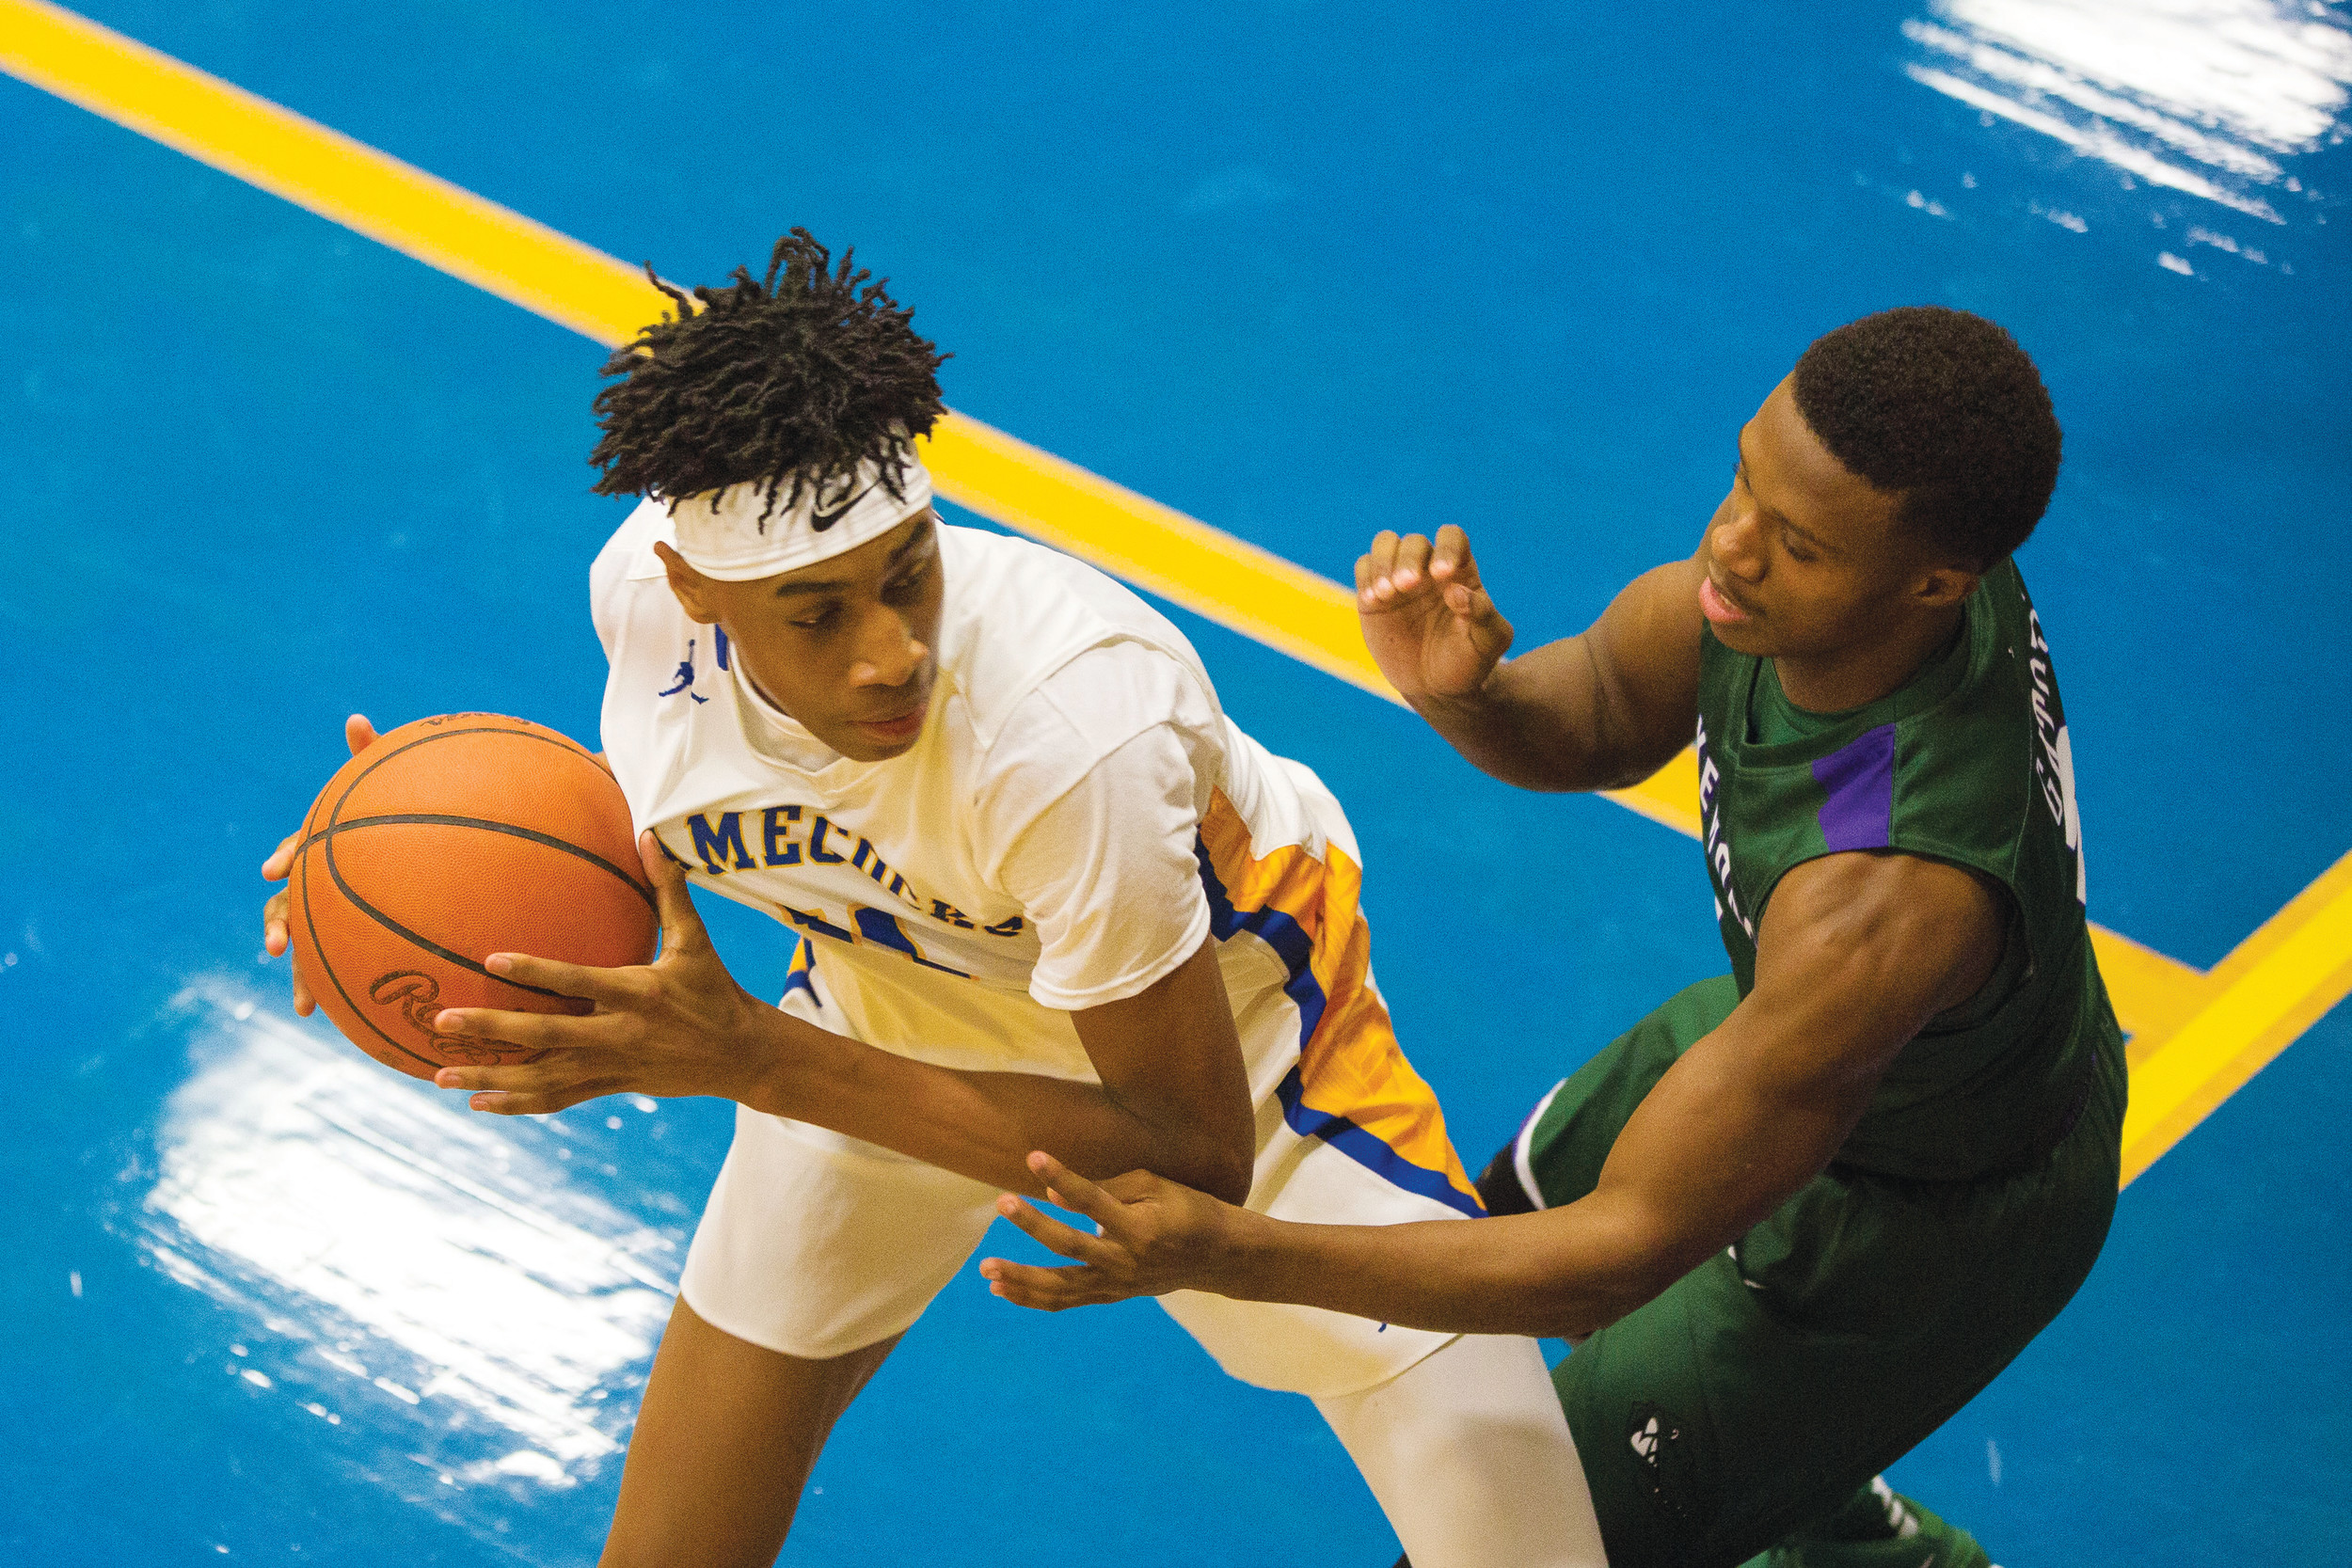 Sumter's Isiah Moore (11) tries to make a move on Lakewood's Ahkeem Lawson in the Gamecocks' 50-46 overtime victory on Thursday at the SHS gymnasium.